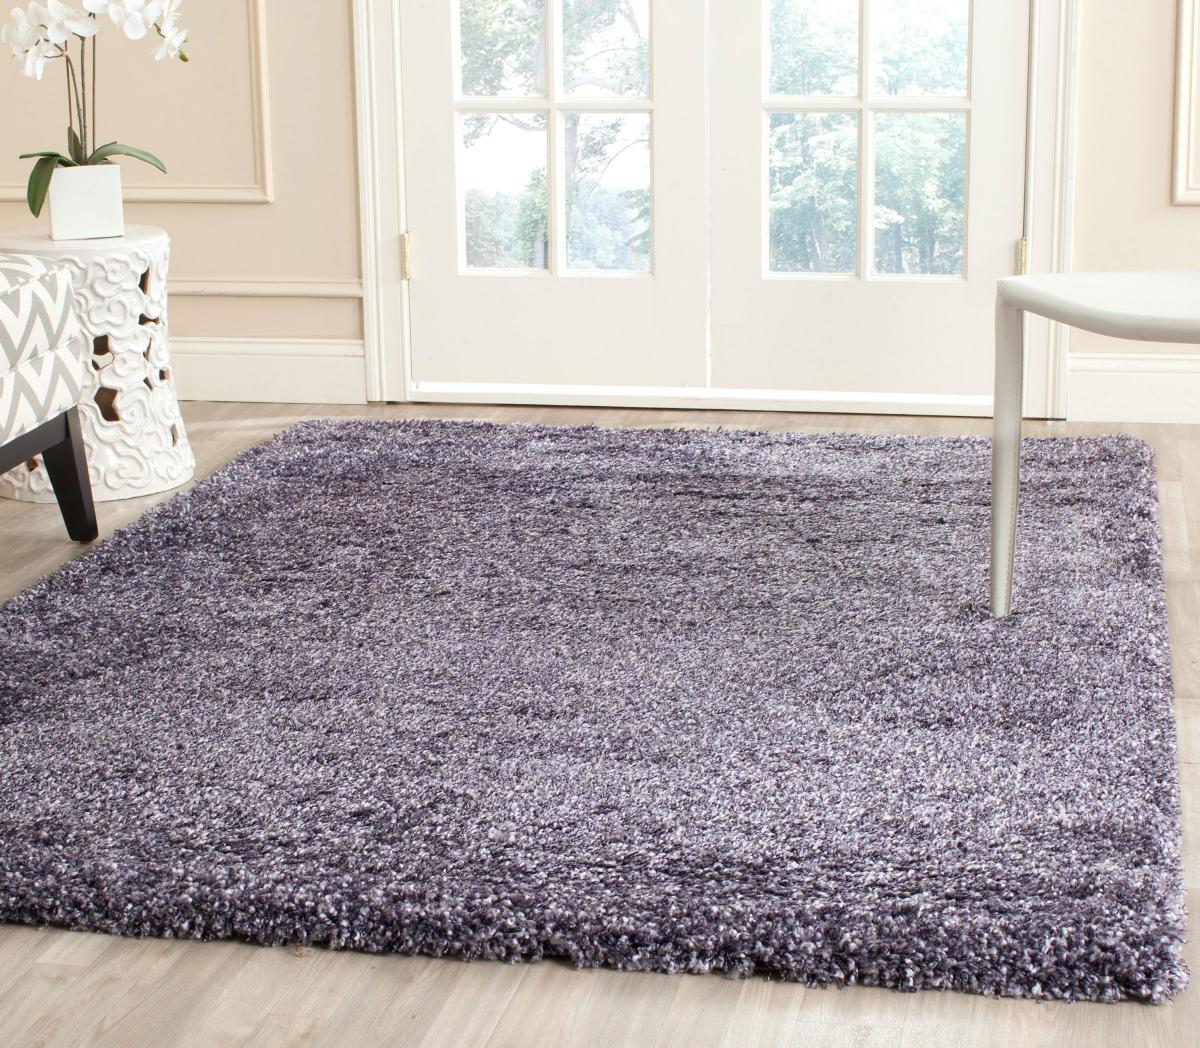 sg1657373 new york shag shag purple soft deep superior high pile shag rug 150 x 230cm